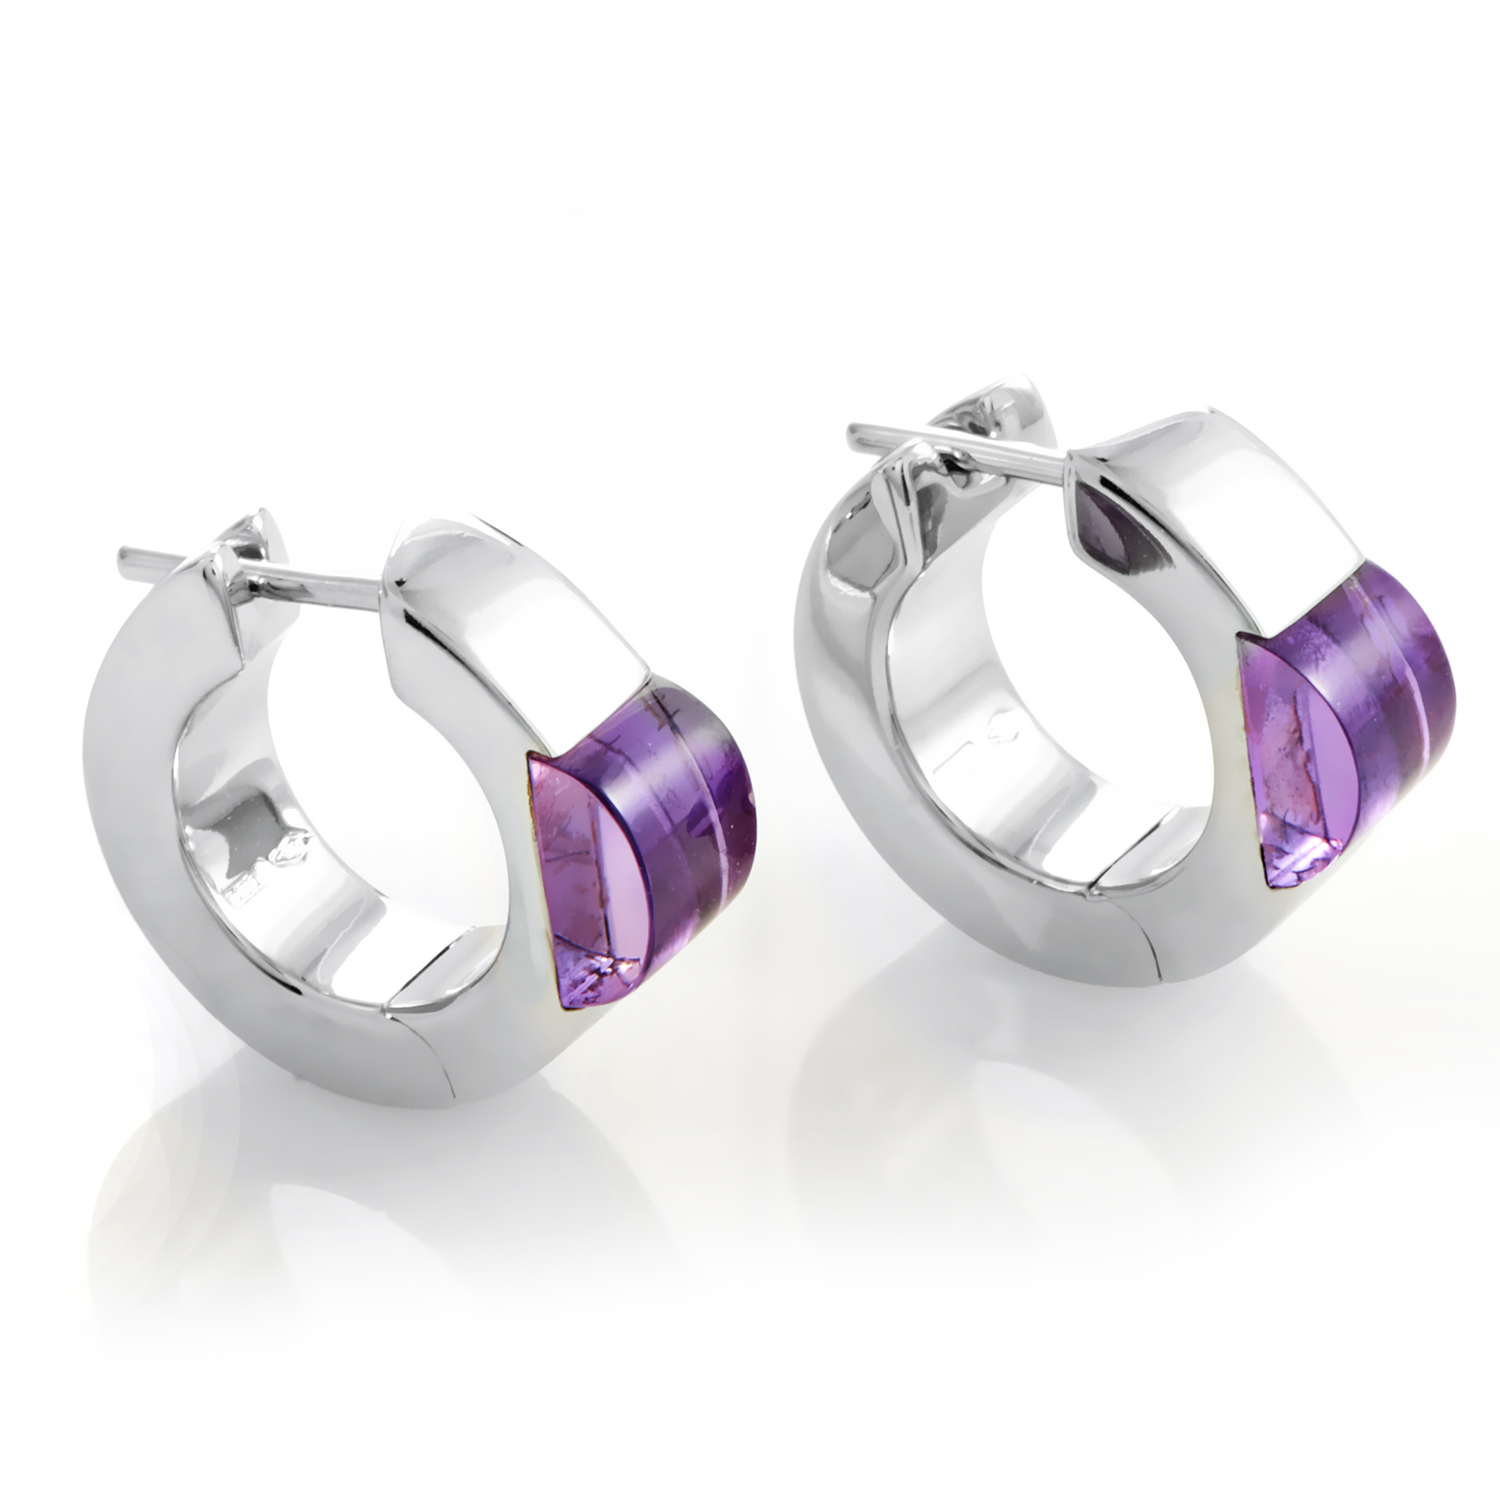 Gucci Women's 18K White Gold Amethyst Hoop Earrings